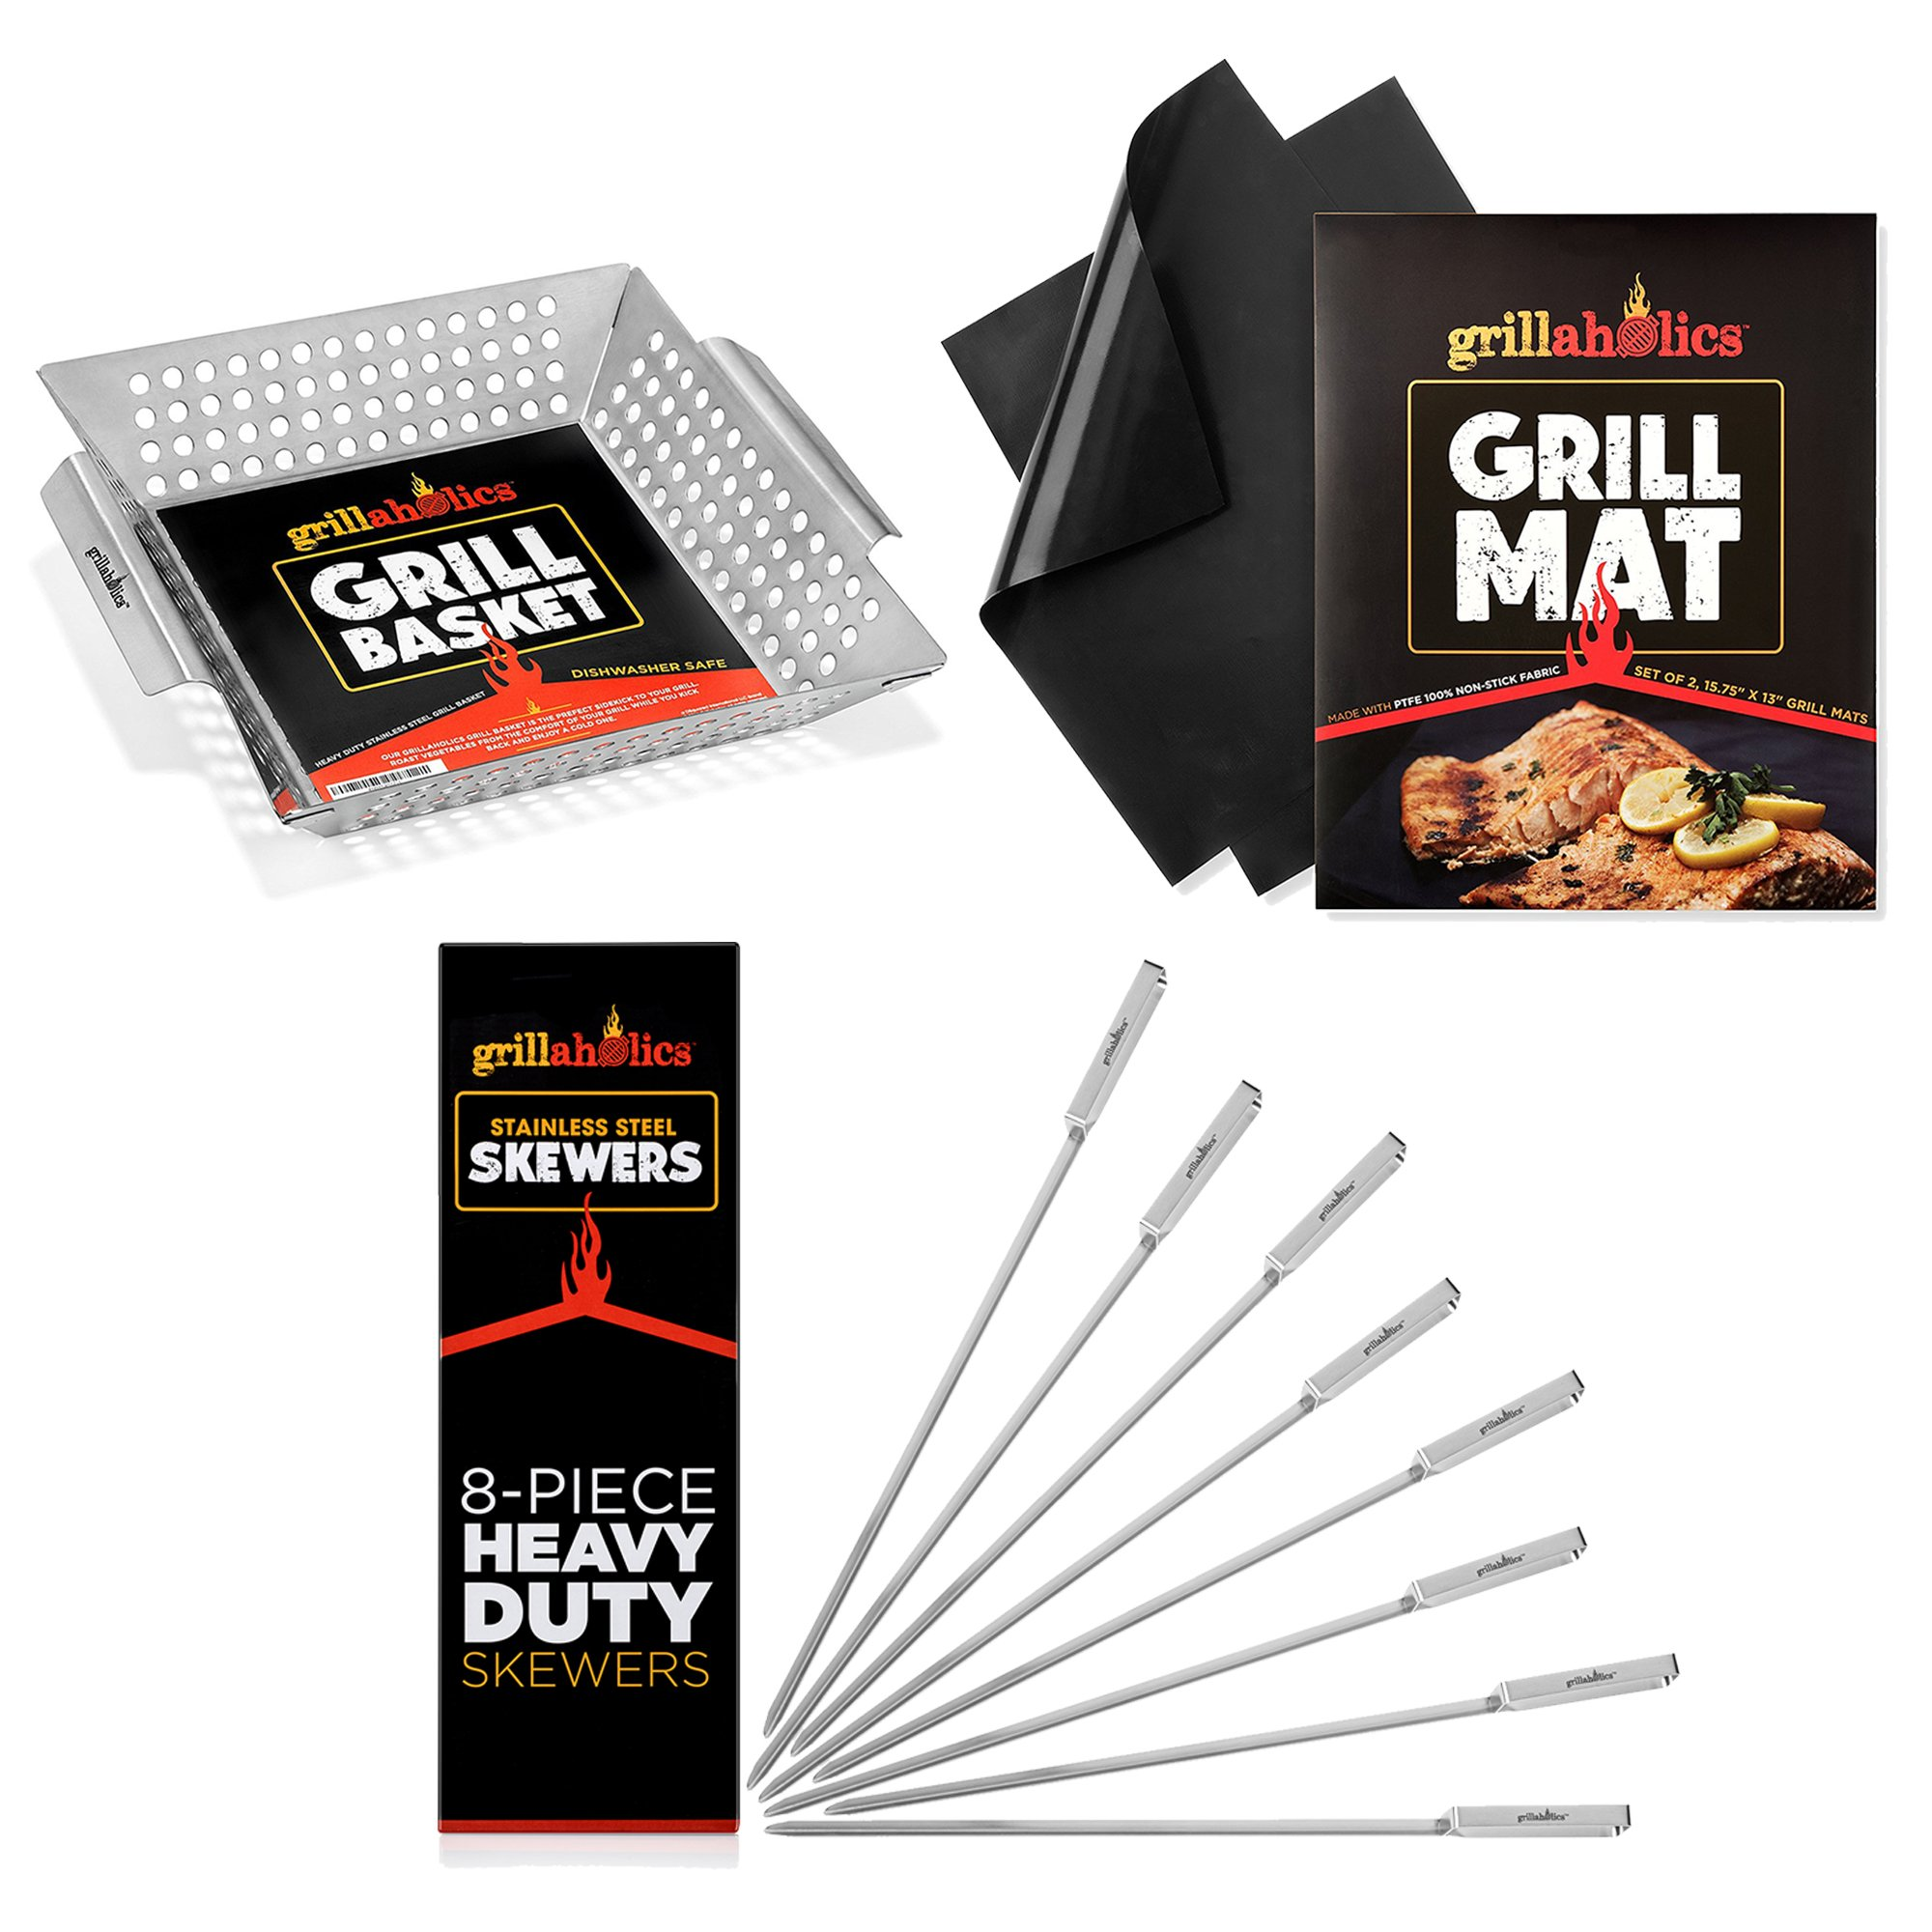 Grillaholics Veggie Lovers Bundle - Includes Set of 2 Non Stick Grill Mats, Stainlesss Steel BBQ Skewers, and Heavy Duty Grill Basket - Perfect Grilling Accessories Package